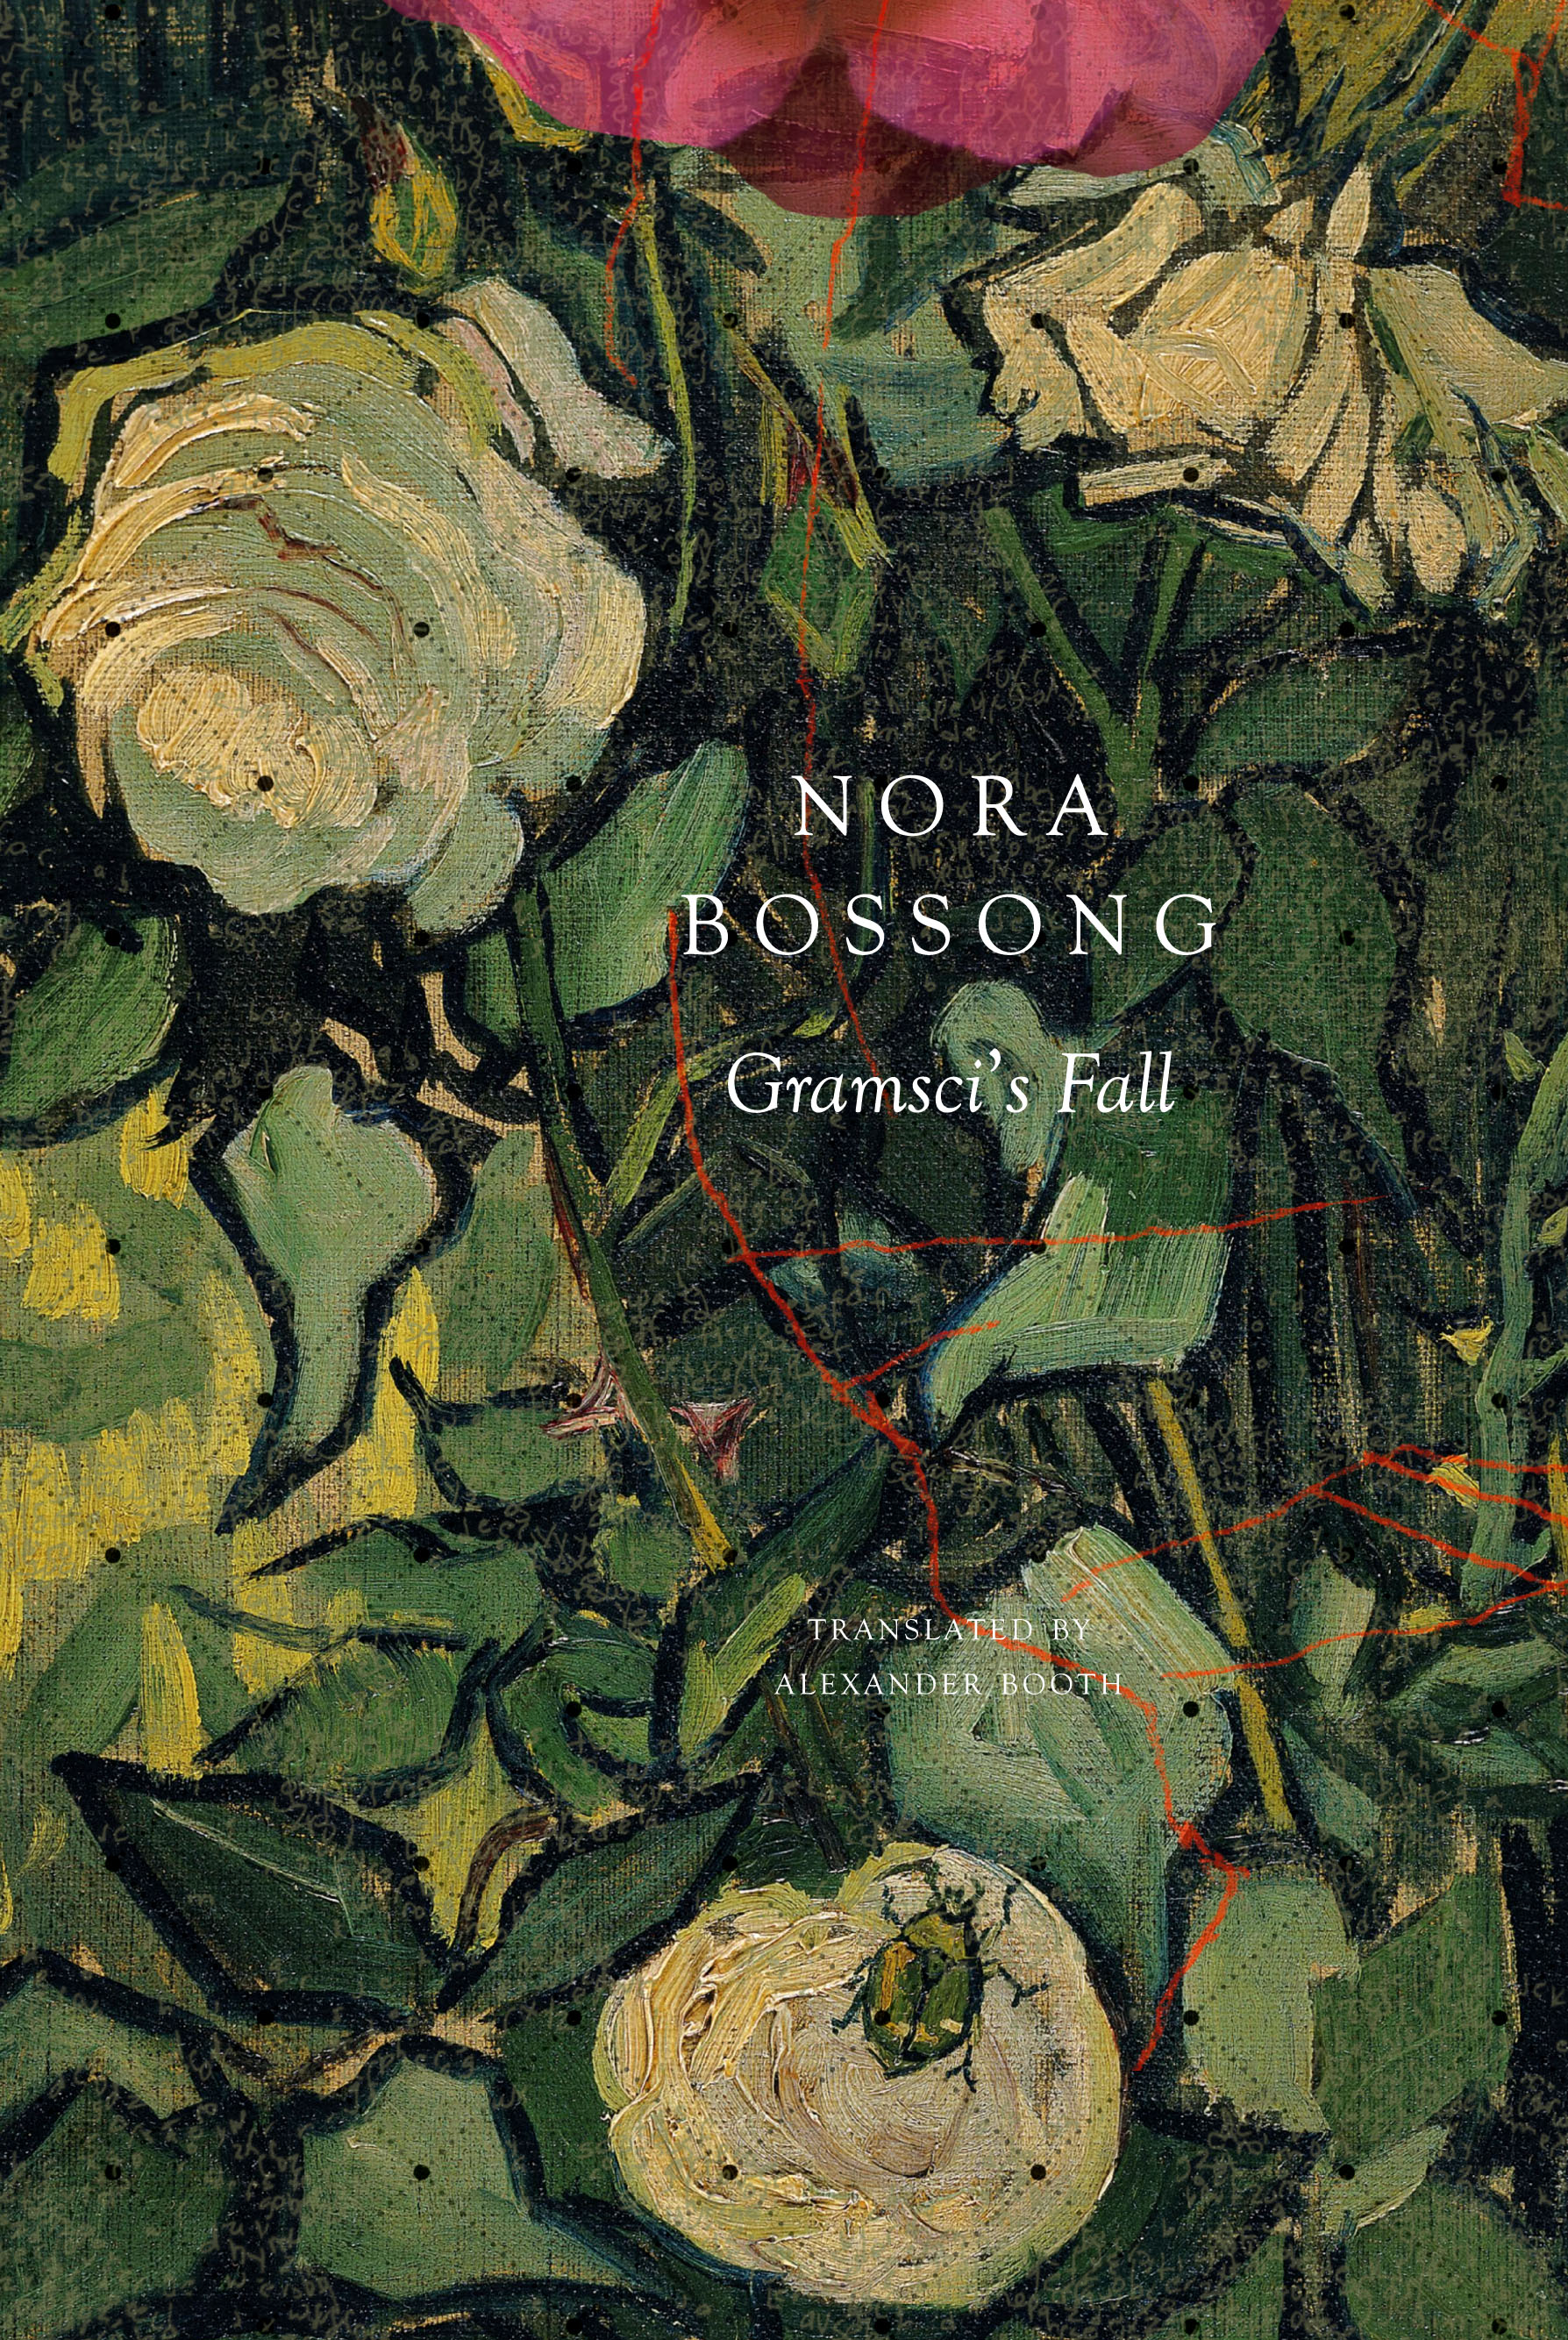 Gramsci's Fall by Nora Bossong | Seagull Books